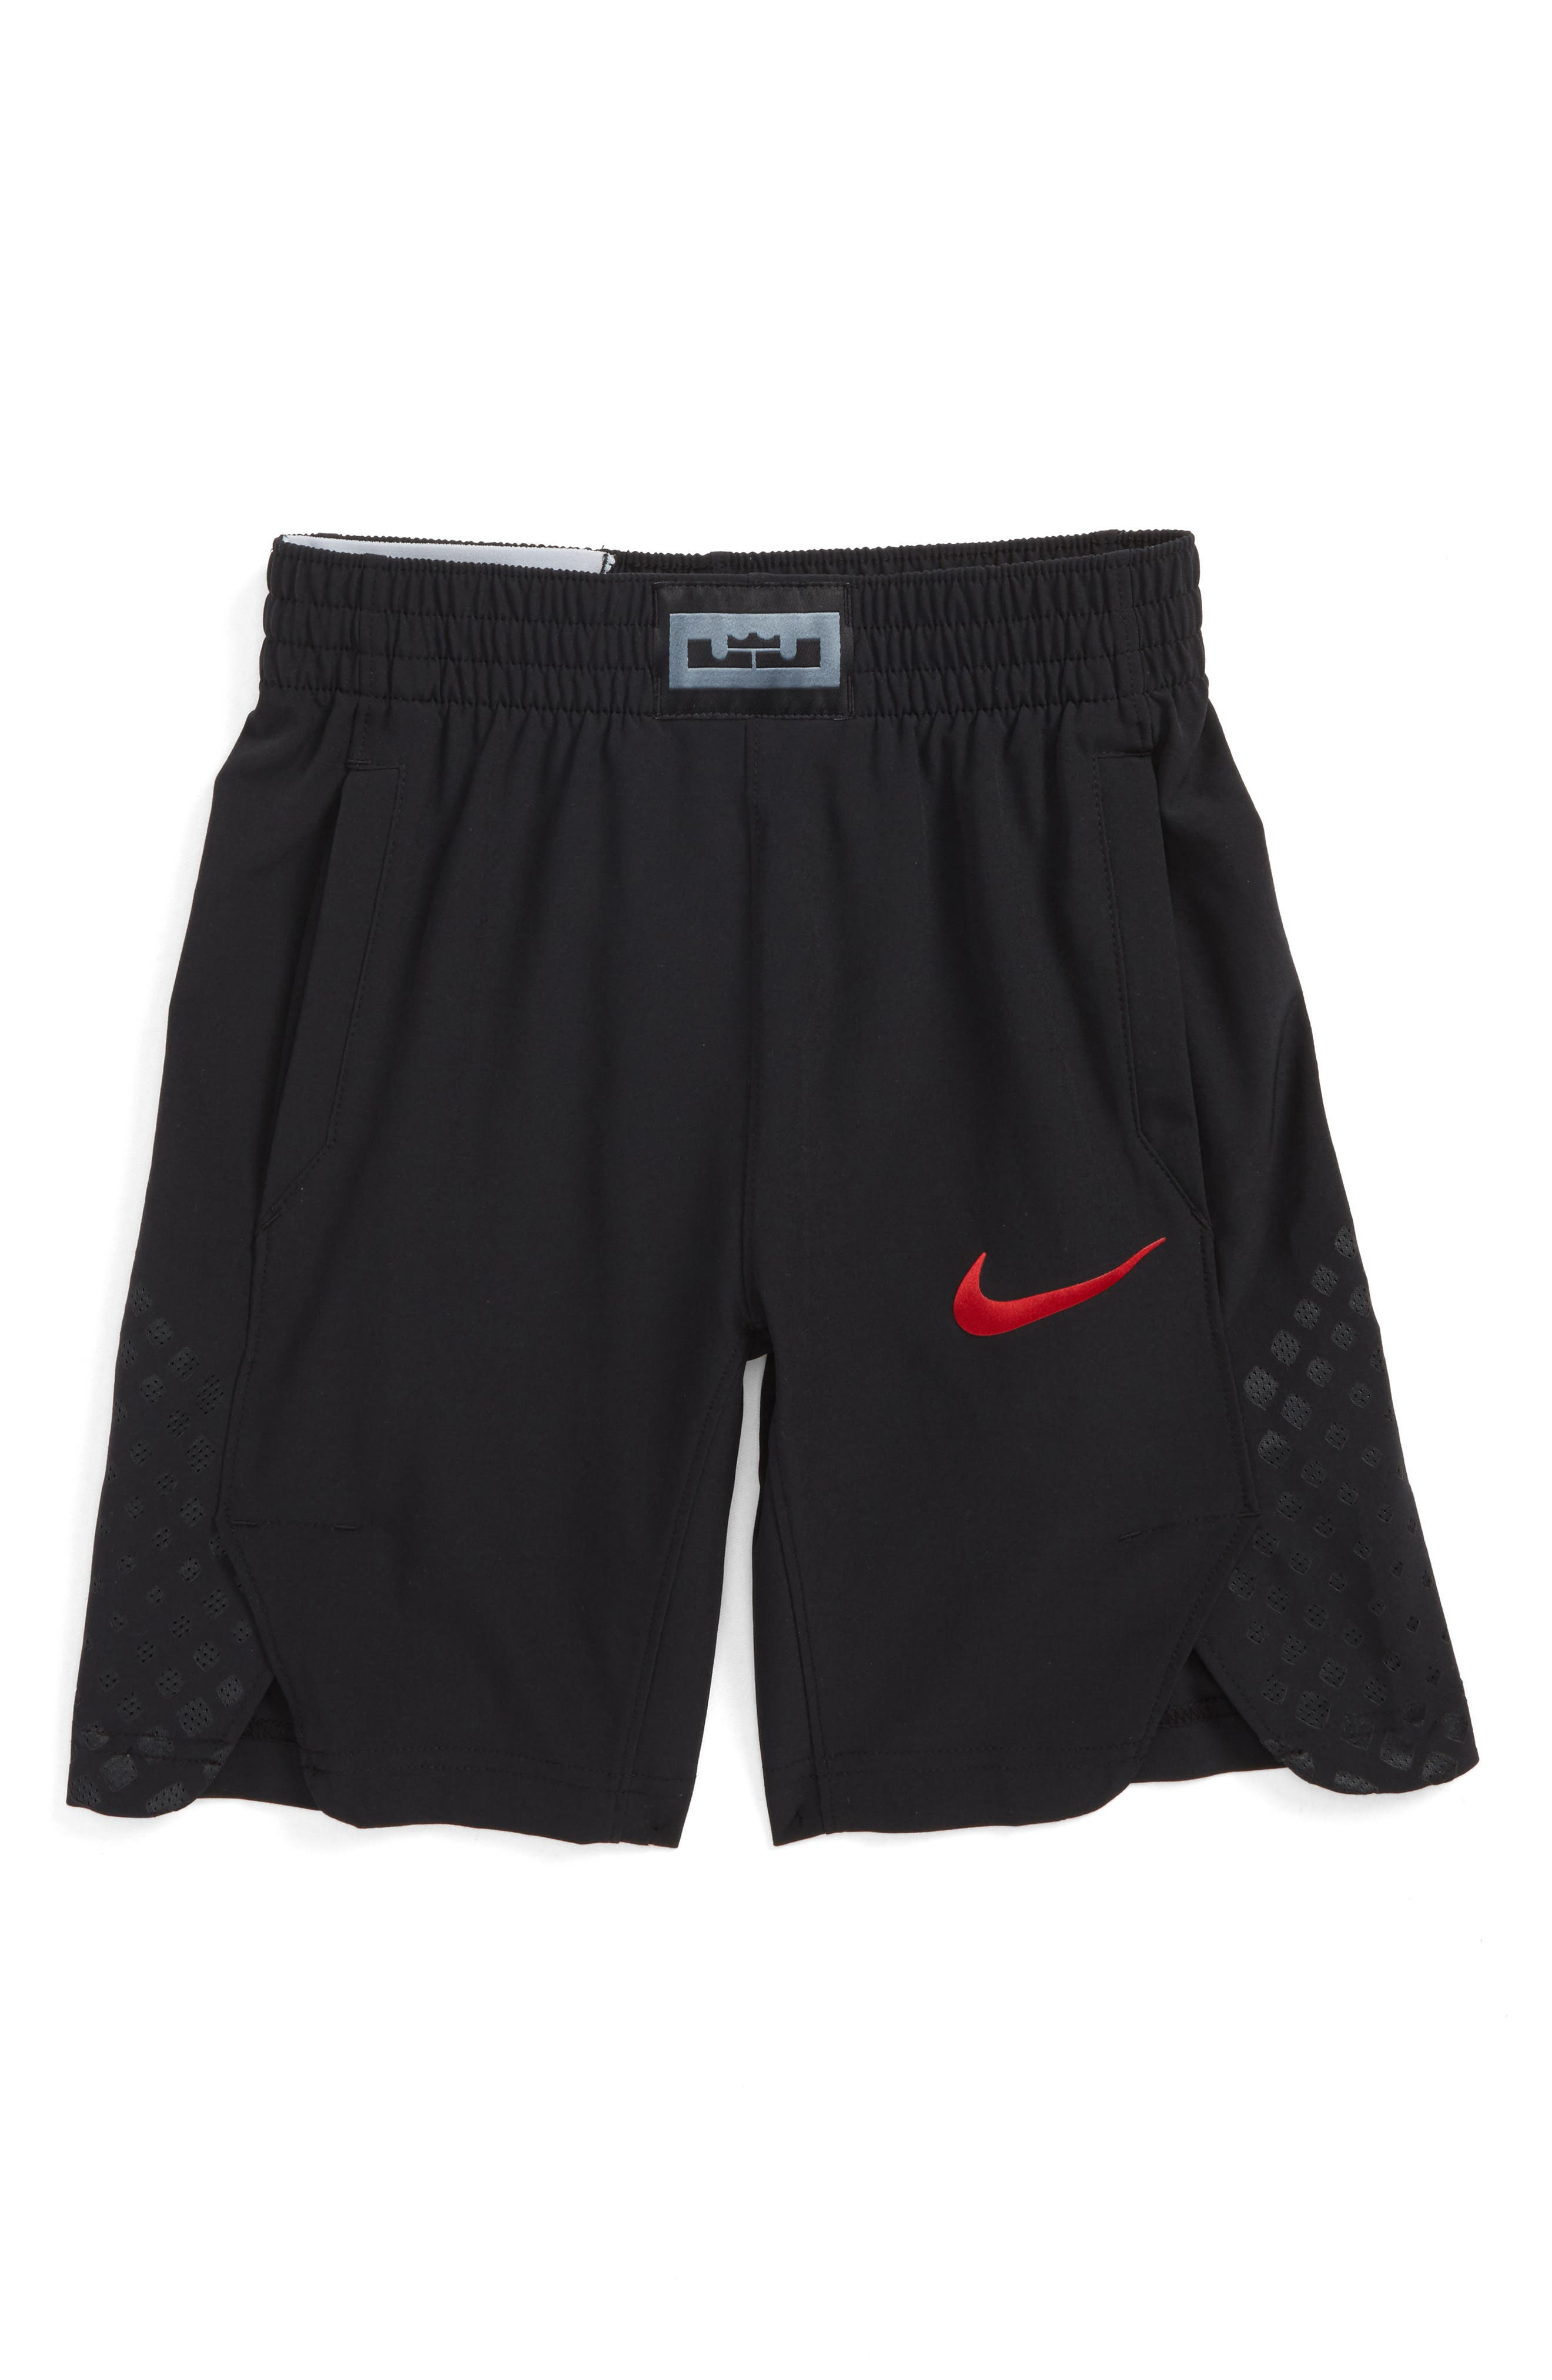 Main Image - Nike LeBron James Flex Hyper Elite Basketball Shorts